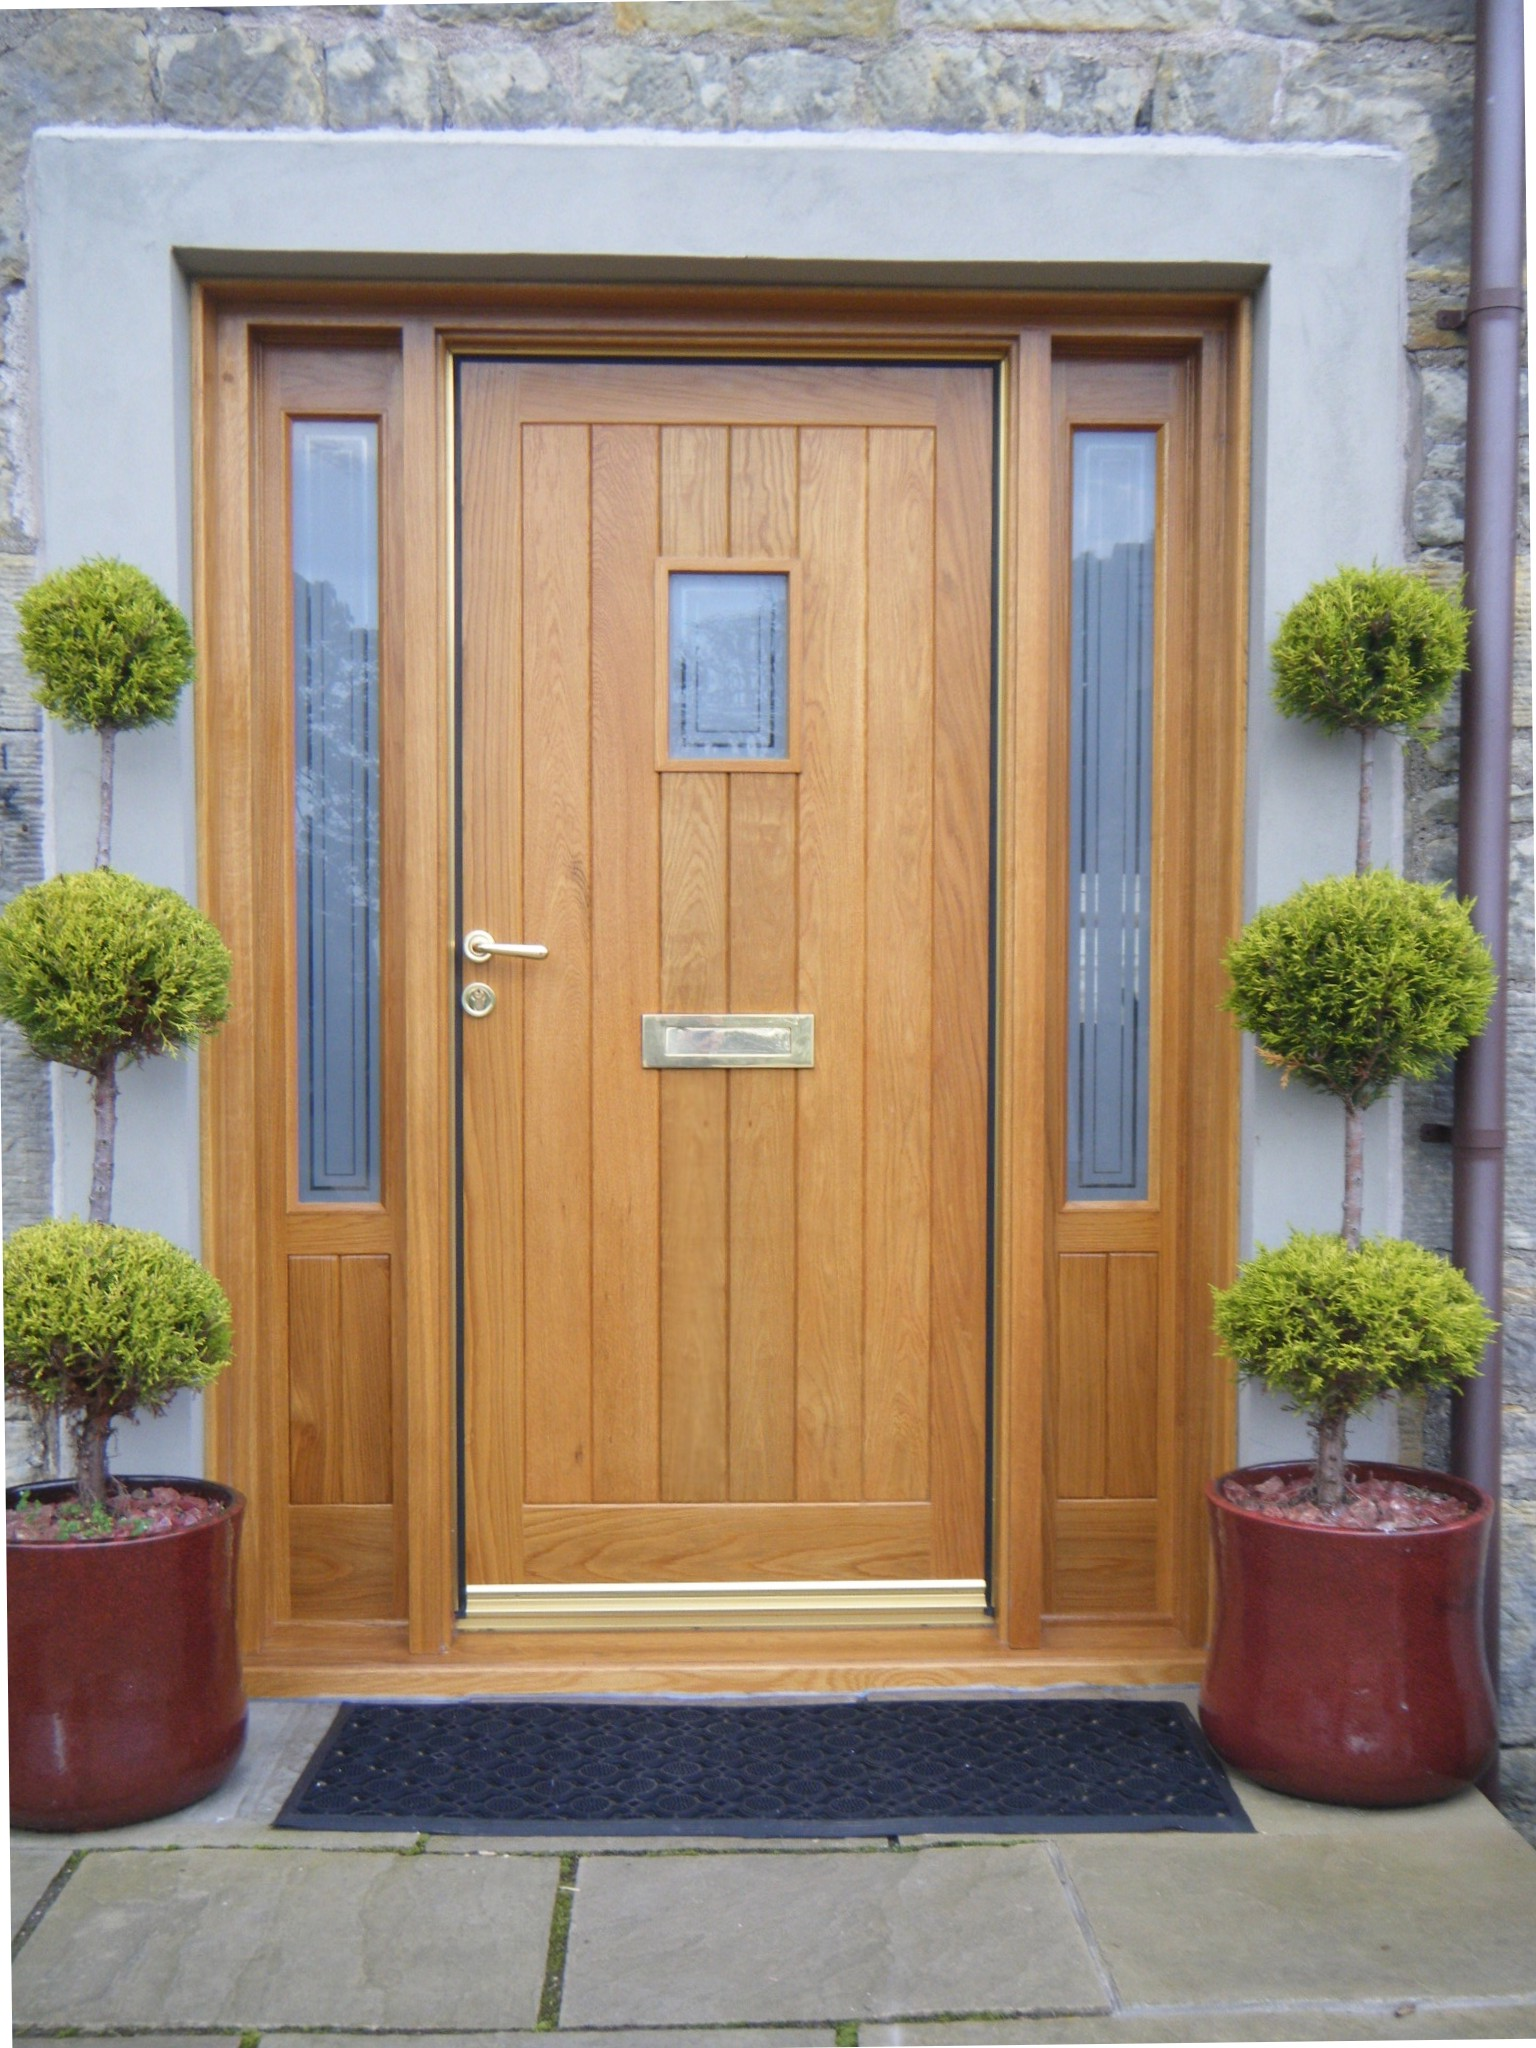 Luxury solid wood front door with glass for Exterior glass door designs for home